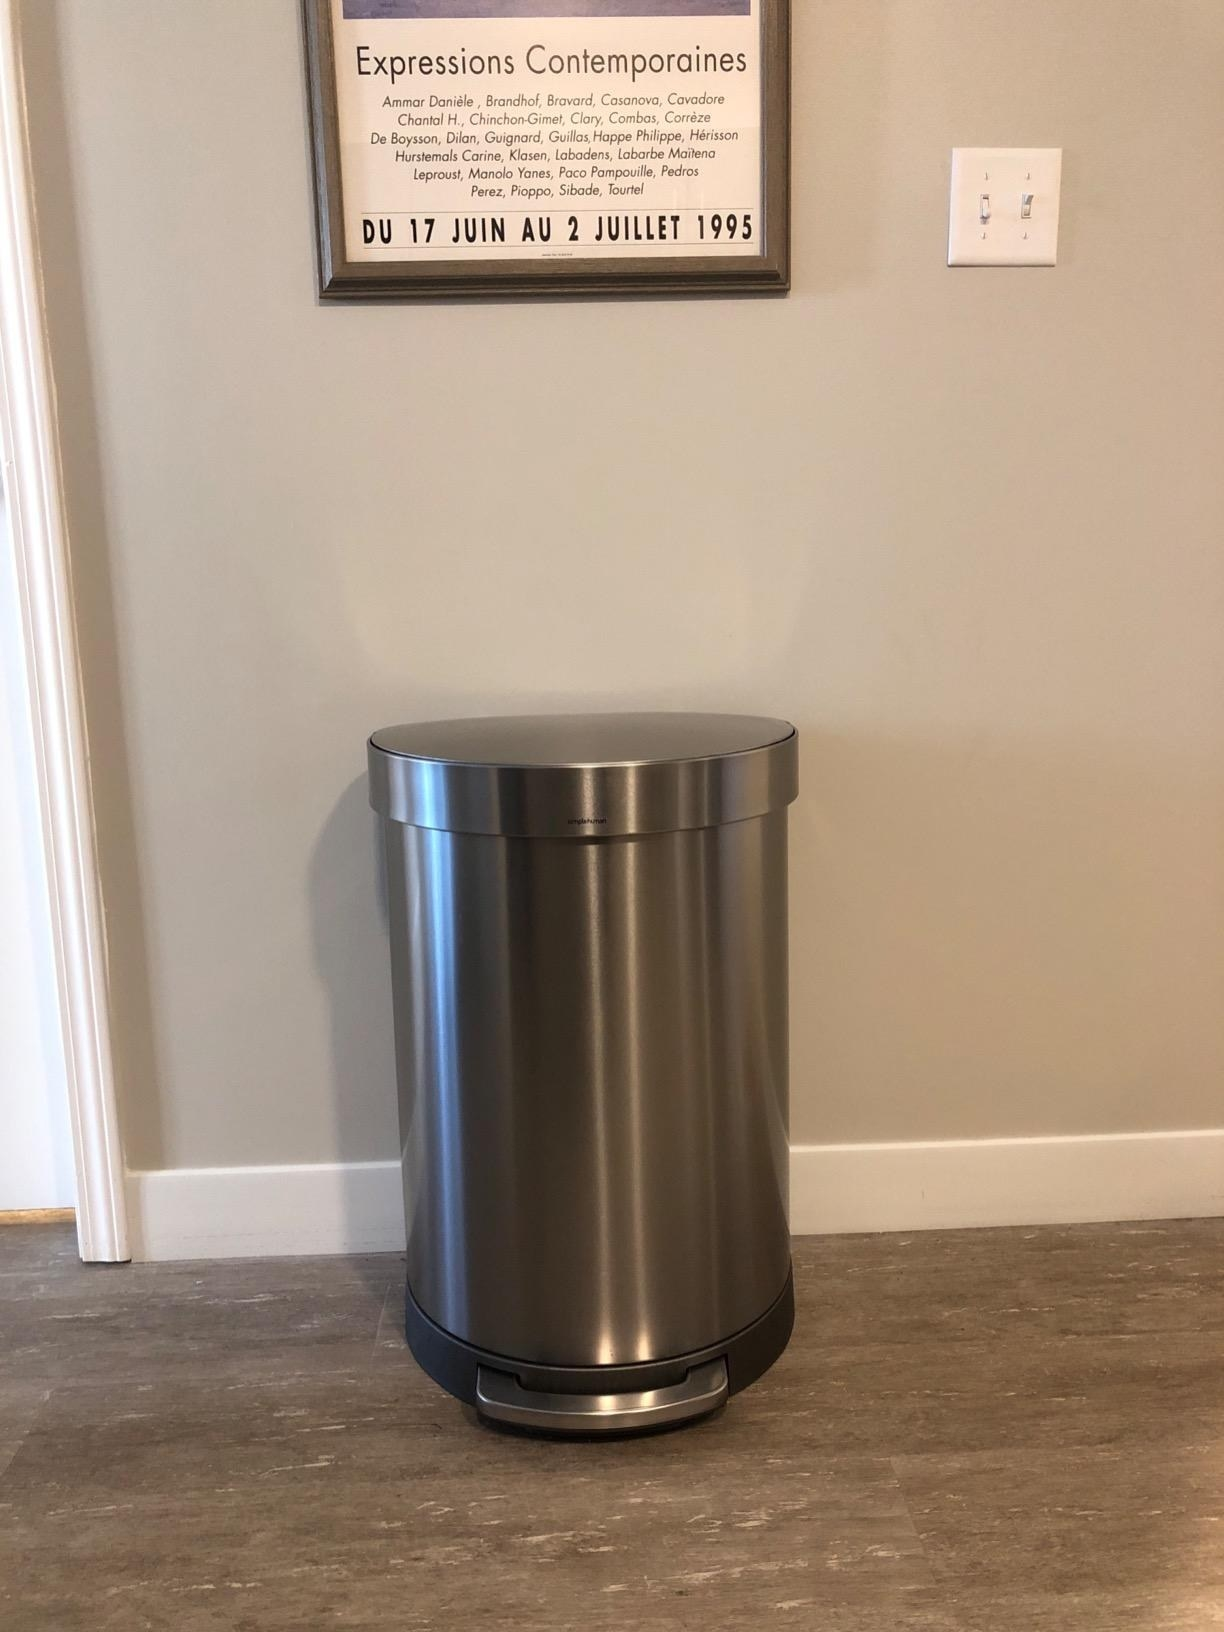 The semi-round trash can against a wall